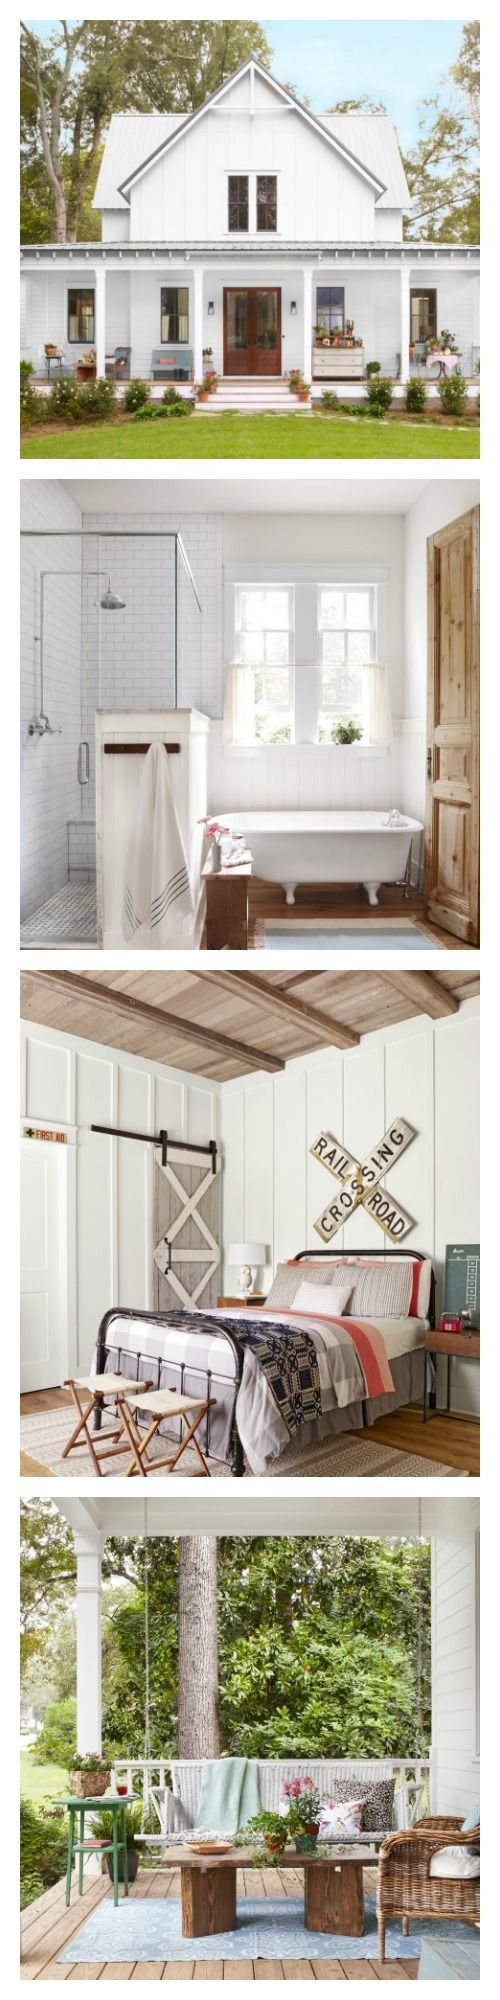 The right bathroom accessories for your new home bath decors - Step Inside One Of The Prettiest Country Farmhouses We Ve